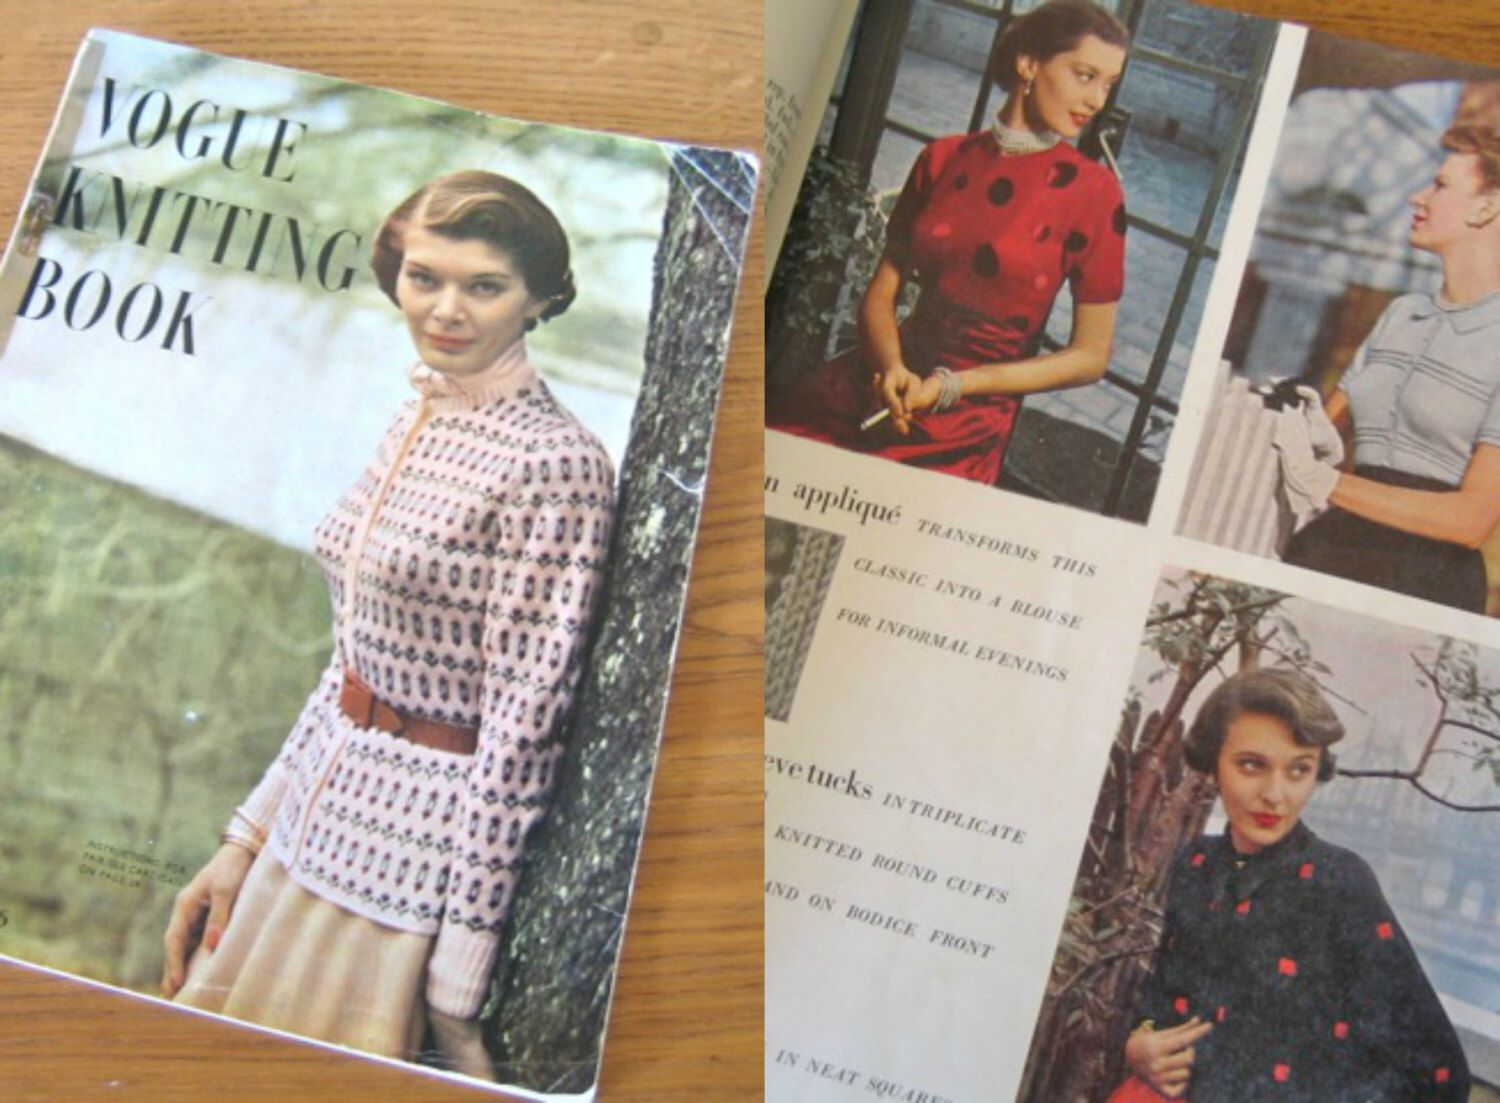 1940s vogue knitting book 1949 no 34 many wonderful patterns by 1940s vogue knitting book 1949 no 34 many wonderful patterns by toptottievintage on etsy https bankloansurffo Choice Image